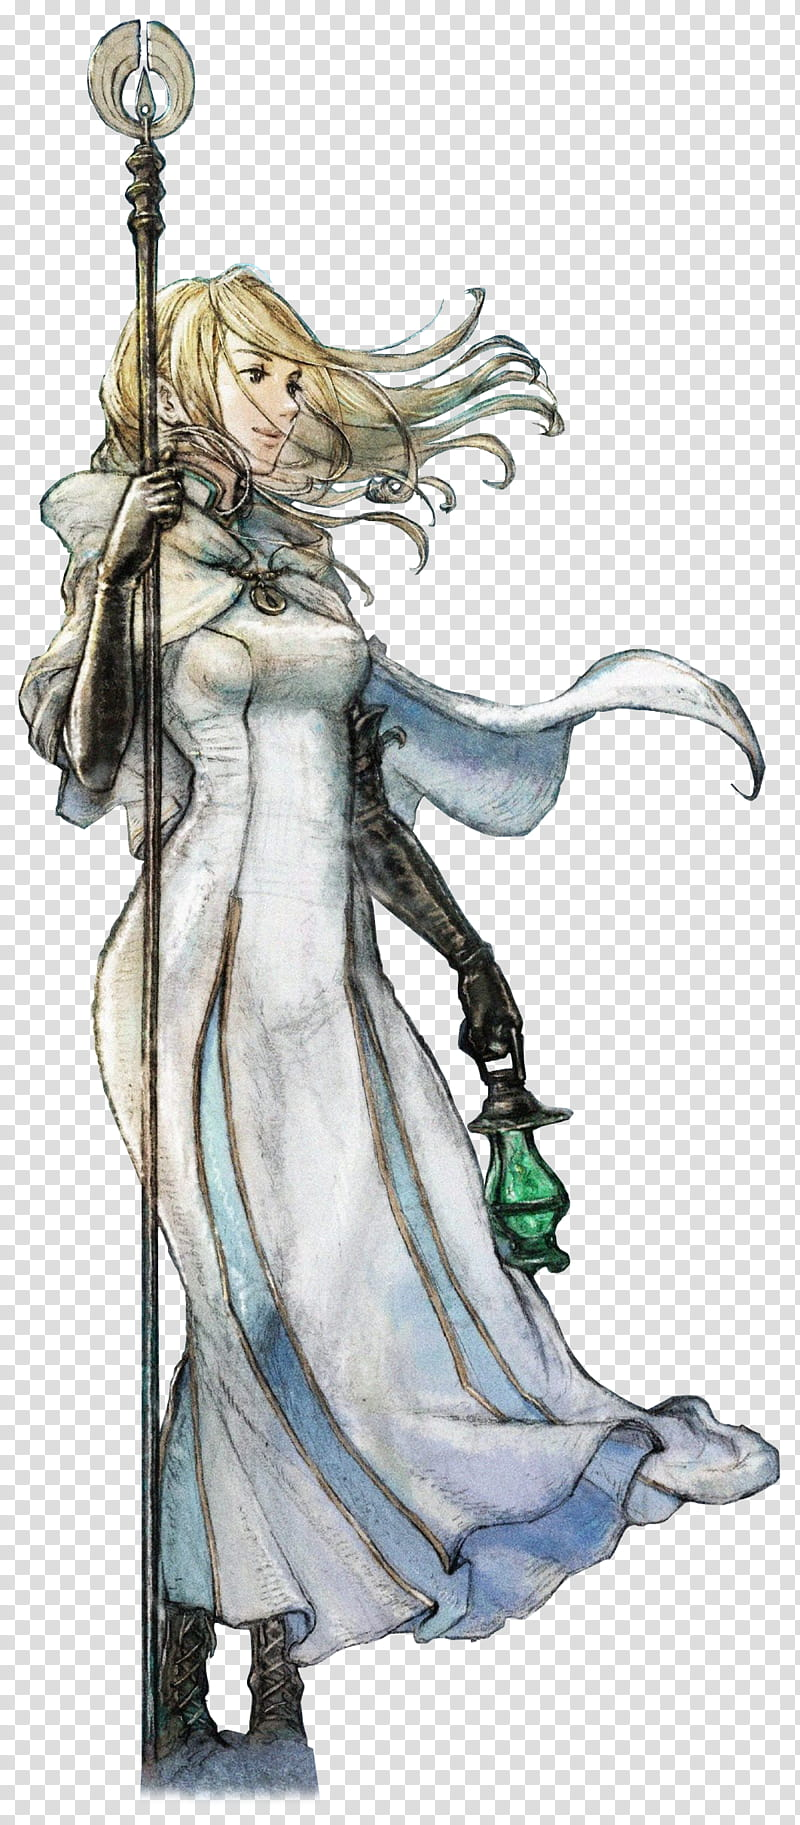 Octopath Traveler Ophilia Render, white dress girl holding.